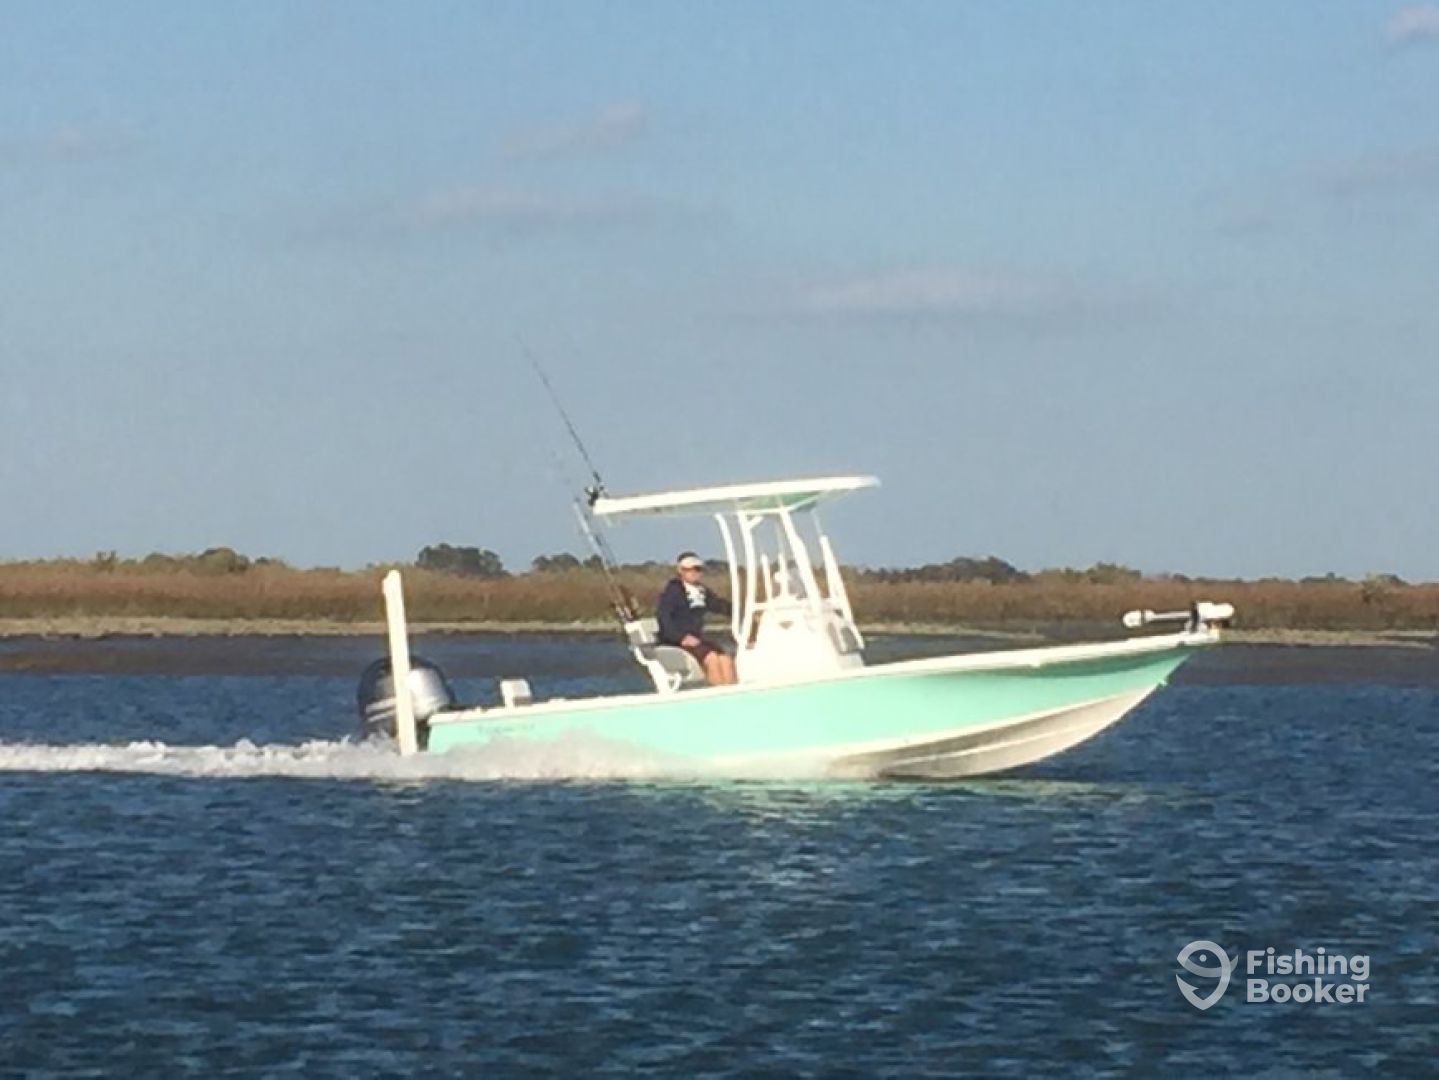 Tidewater fishing charters st augustine fl fishingbooker for St augustine fishing charters